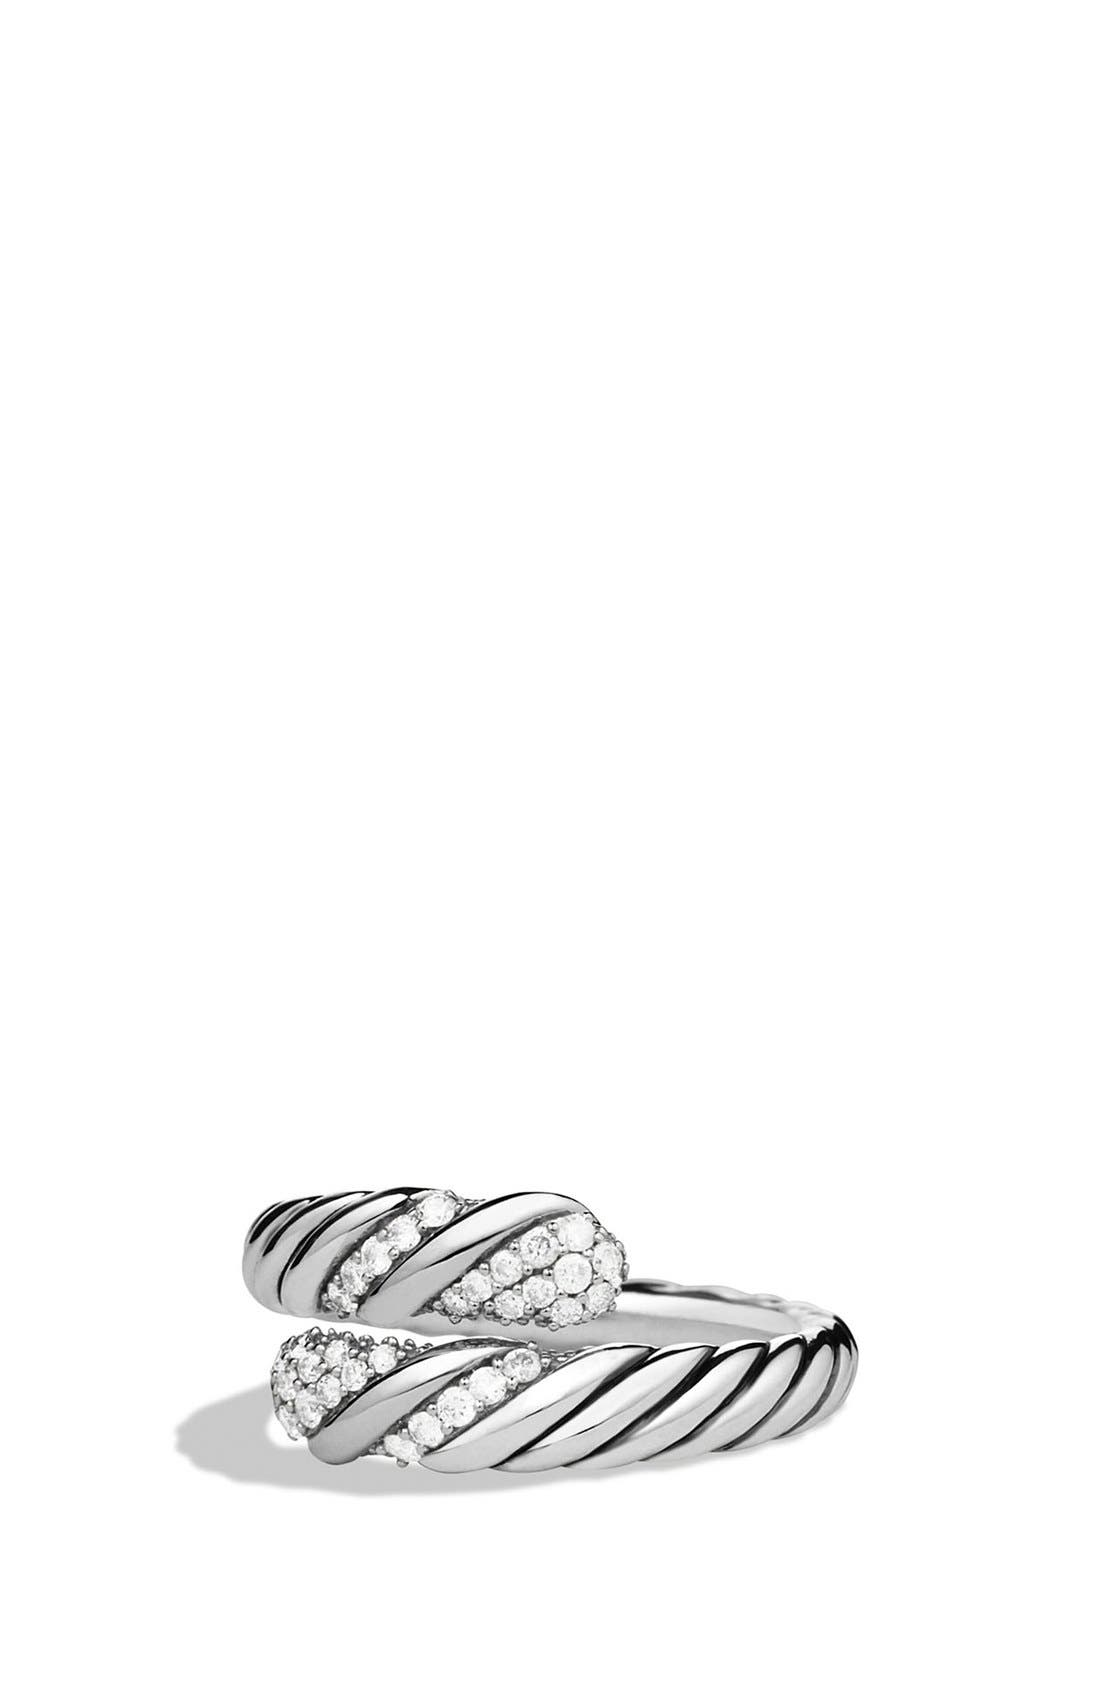 'Willow' Open Single Row Ring with Diamonds,                             Main thumbnail 1, color,                             040